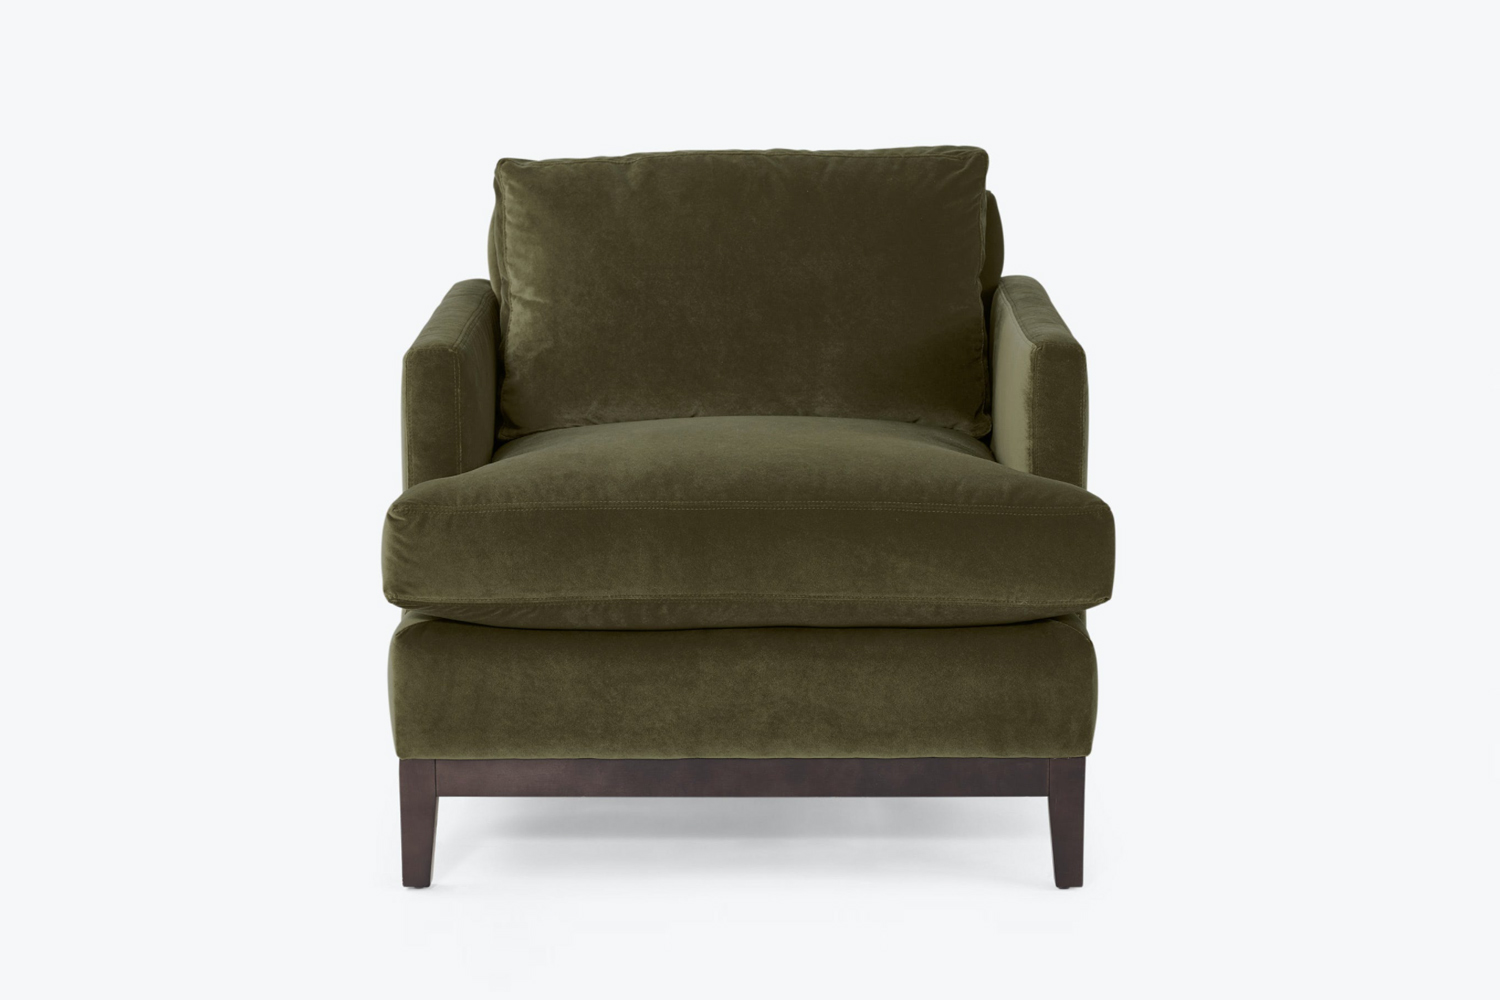 the cobble hill botanical chair in dark olive green is \$\1,080 at abc carpet & 18